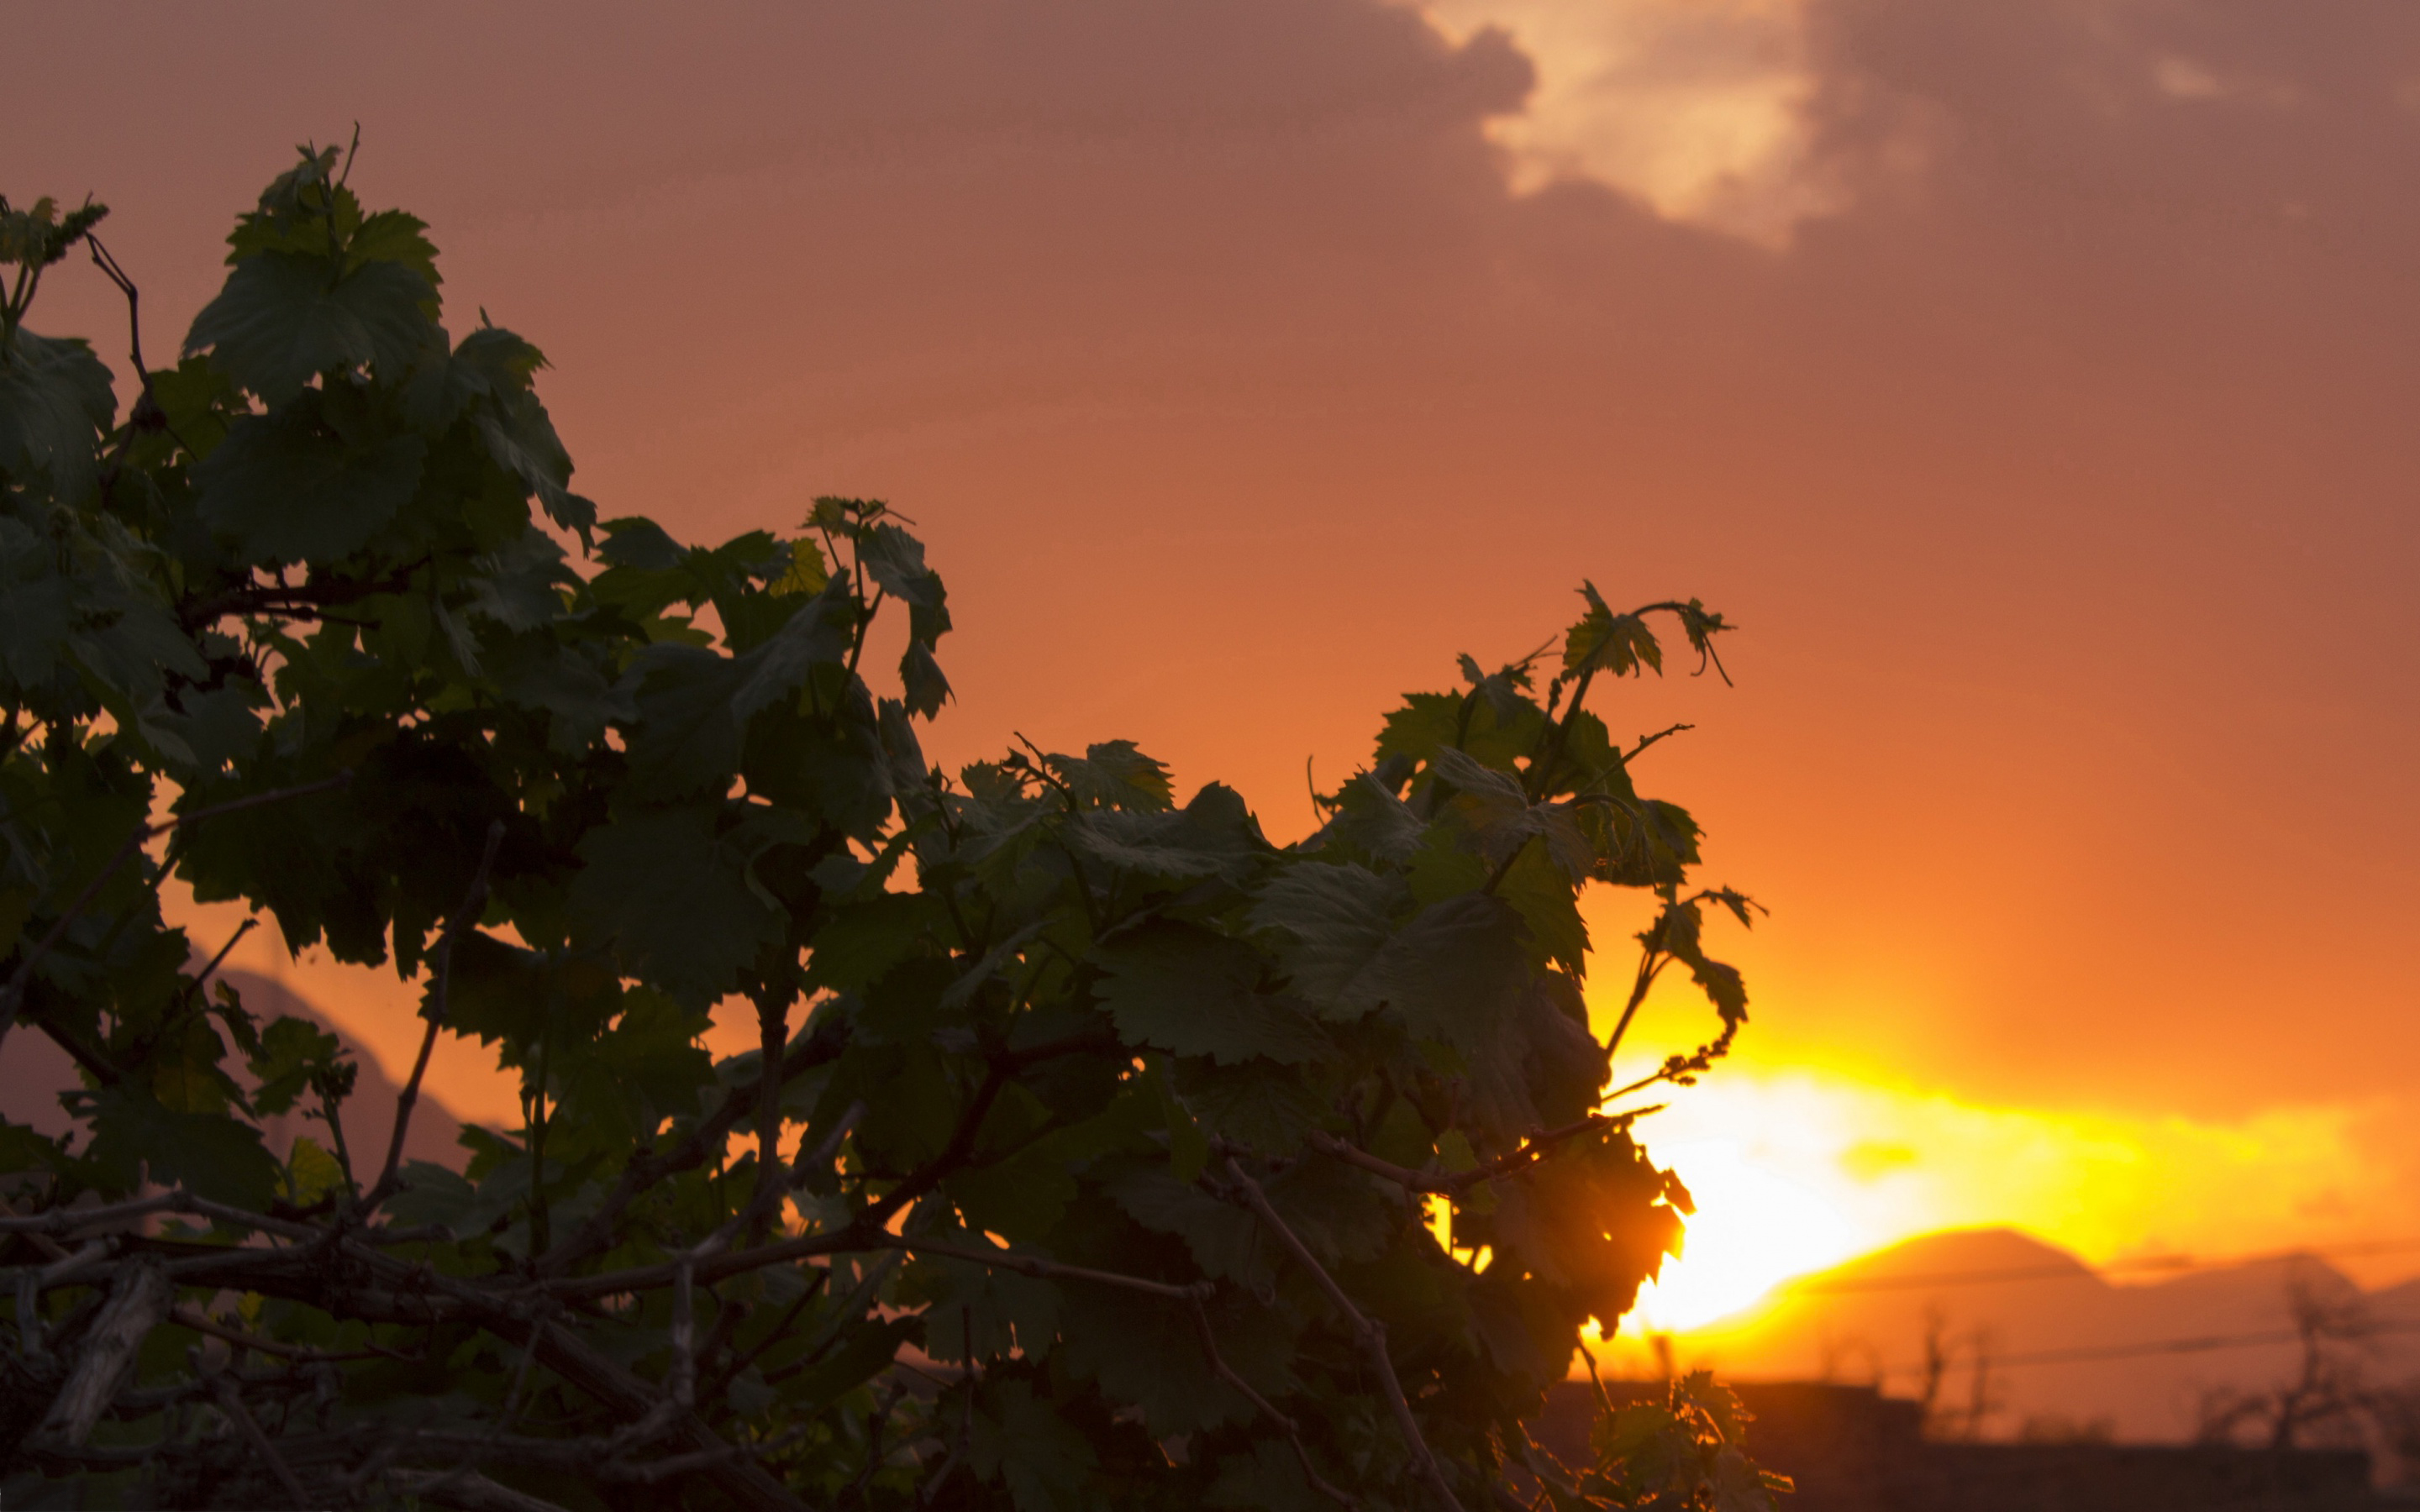 sunset images grapes